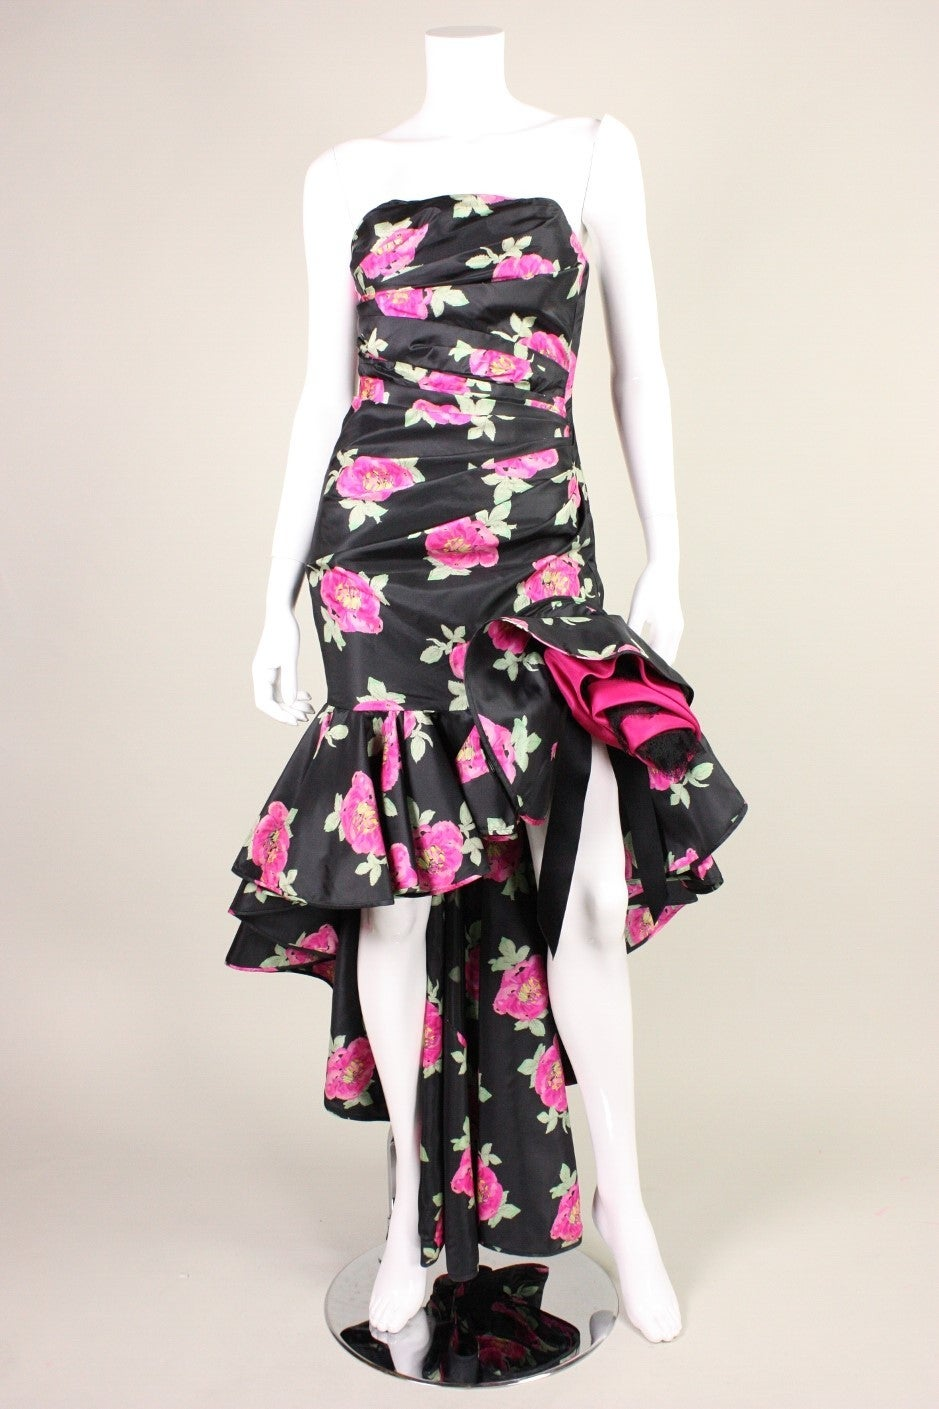 Flamenco-inspired evening dress from Emanuel Ungaro dates to the 1980's and is made of black silk taffeta with a pink floral print.  Front and back bodice are ruched on both sides.  Side zipper.  Fully lined.  Labeled a vintage size 8, but please